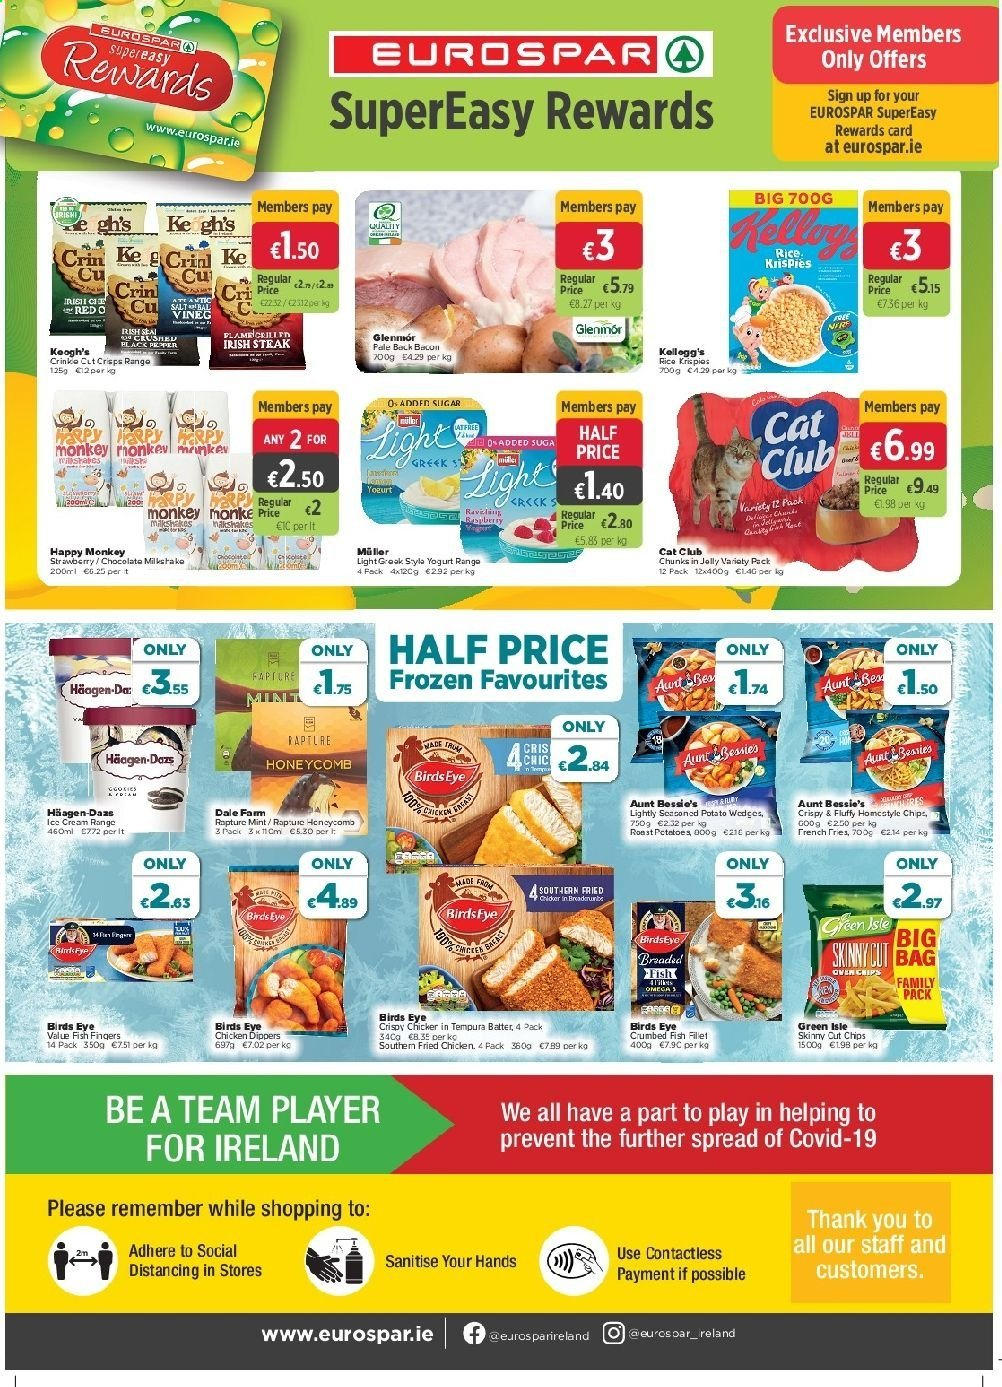 EUROSPAR offer  - 30.7.2020 - 19.8.2020 - Sales products - bag, cream, mint, rice, sugar, yogurt, chicken, chips, chocolate, steak, player, monkey, card, strawberry, family pack, jelly, fish, fried chicken, roast. Page 8.